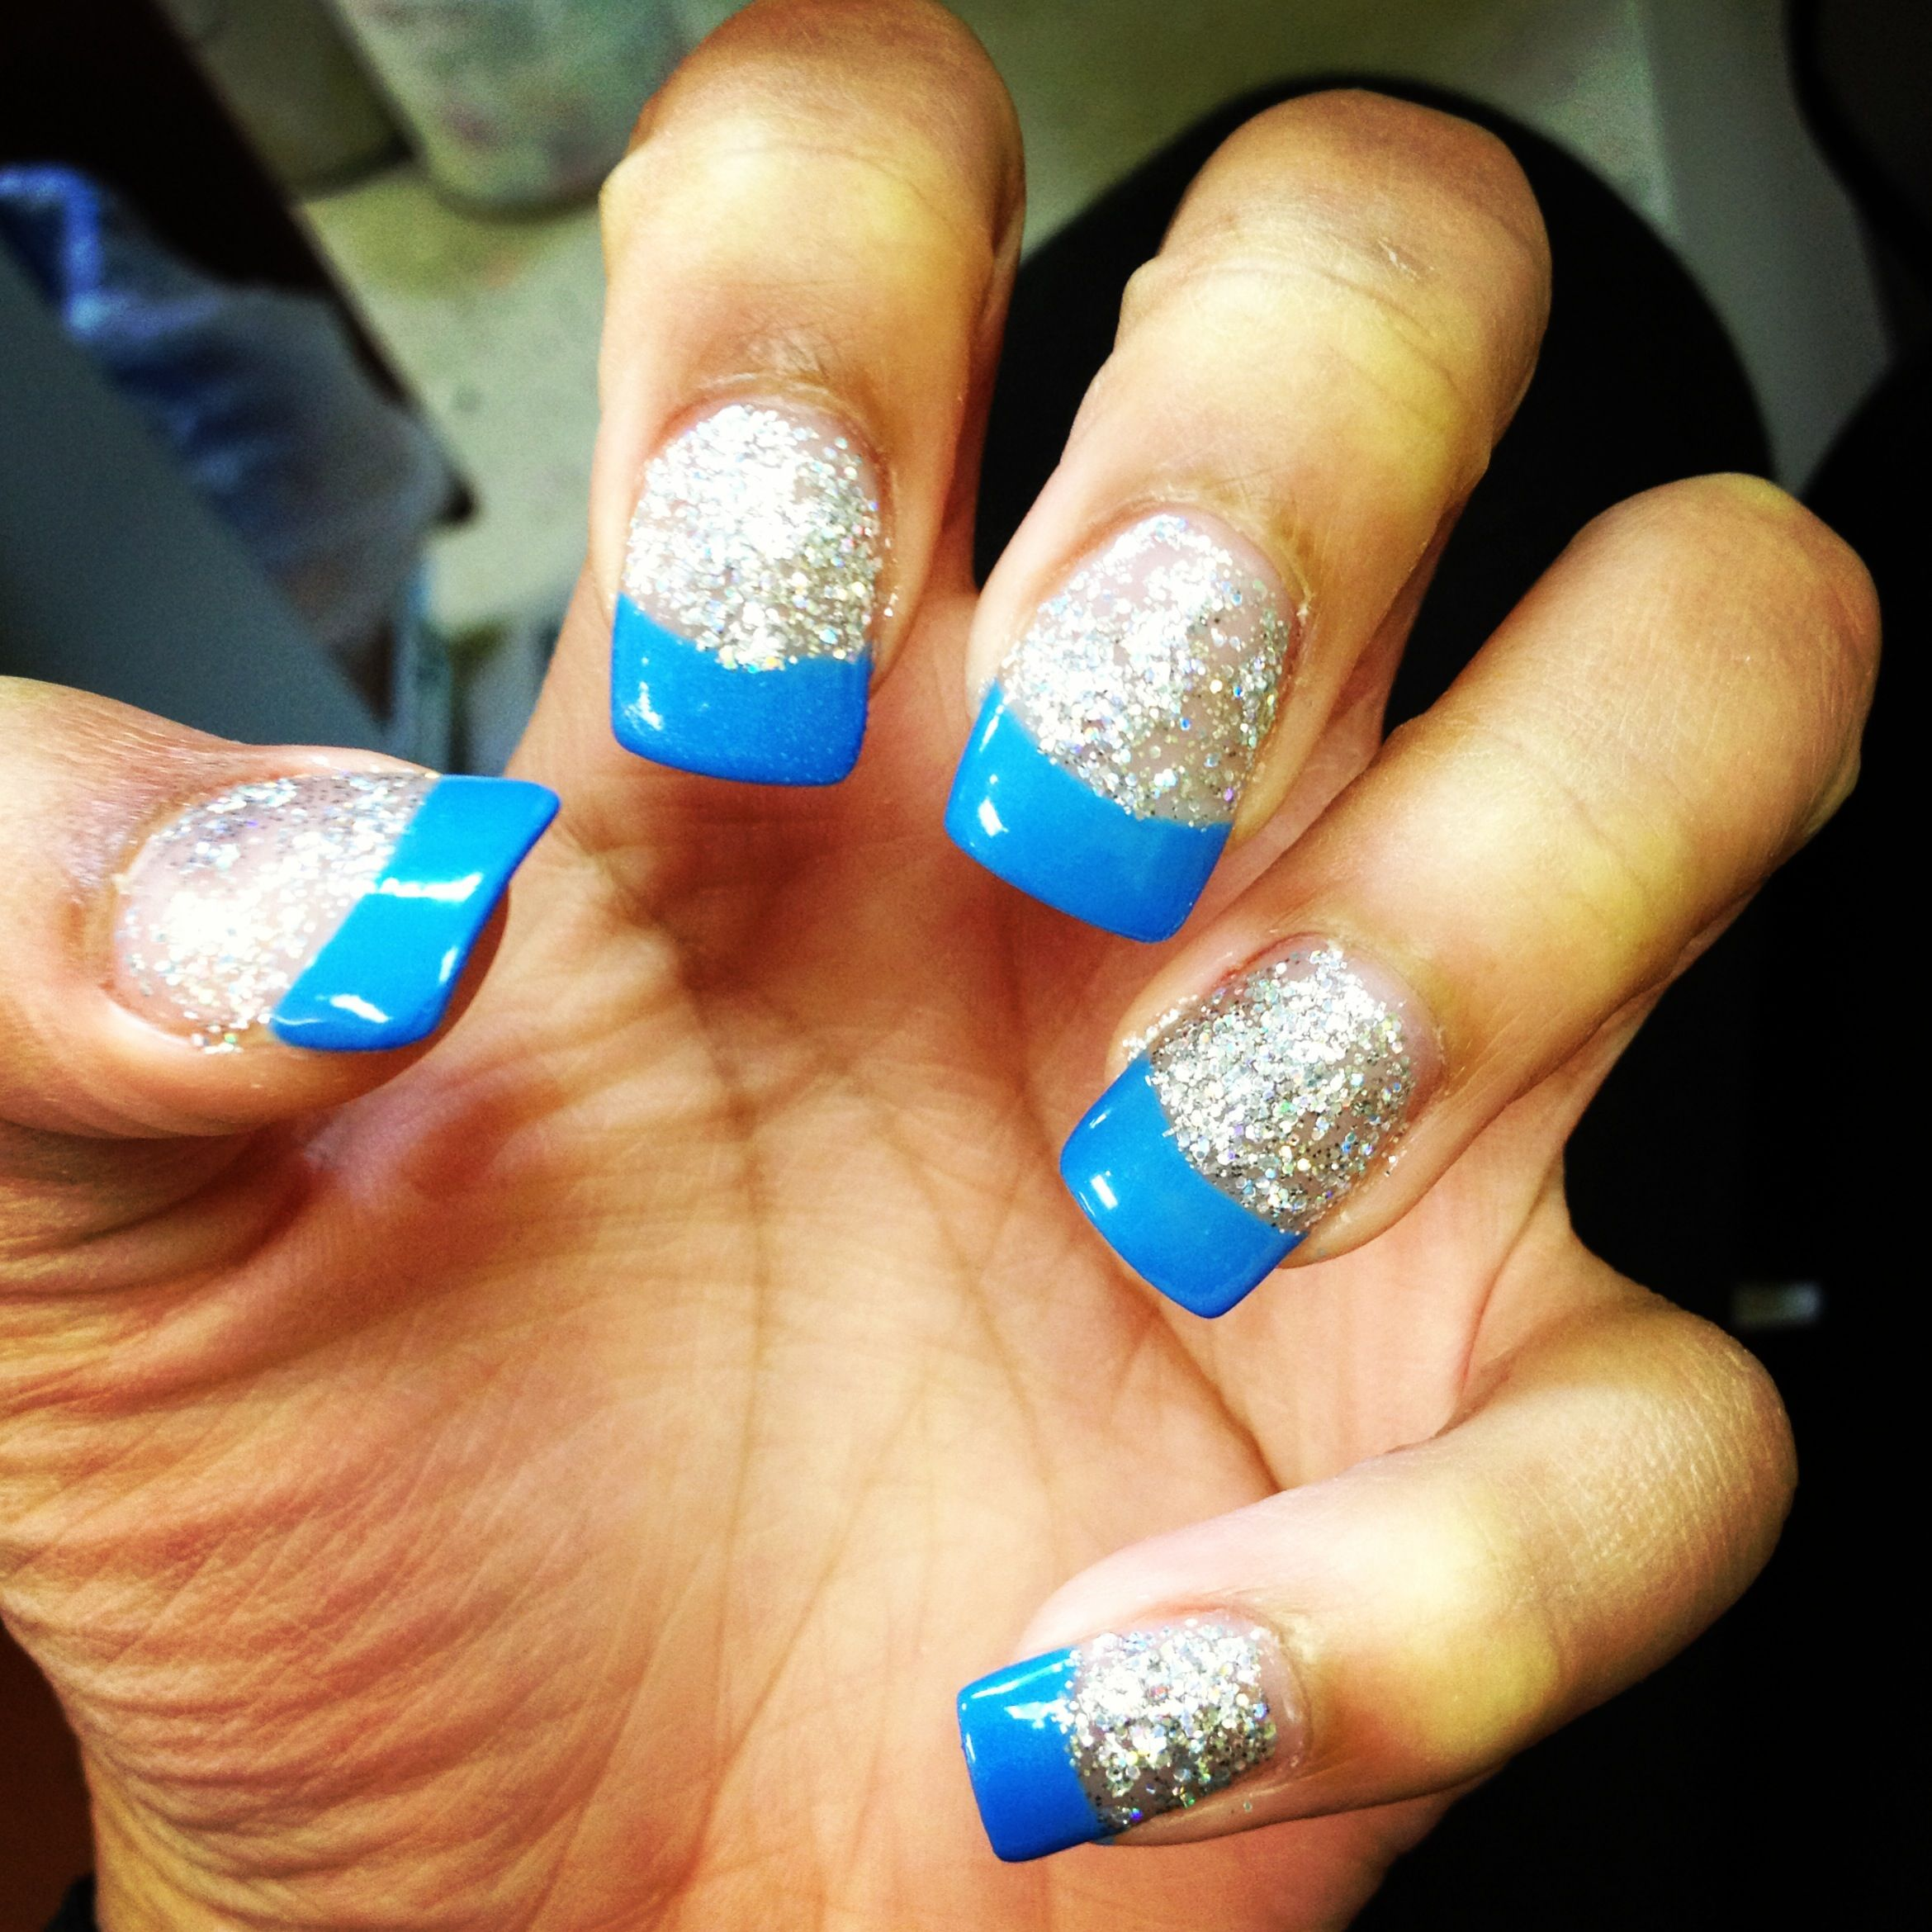 Prom nails | S L A Y | Pinterest | Prom nails, Manicure and Hair makeup